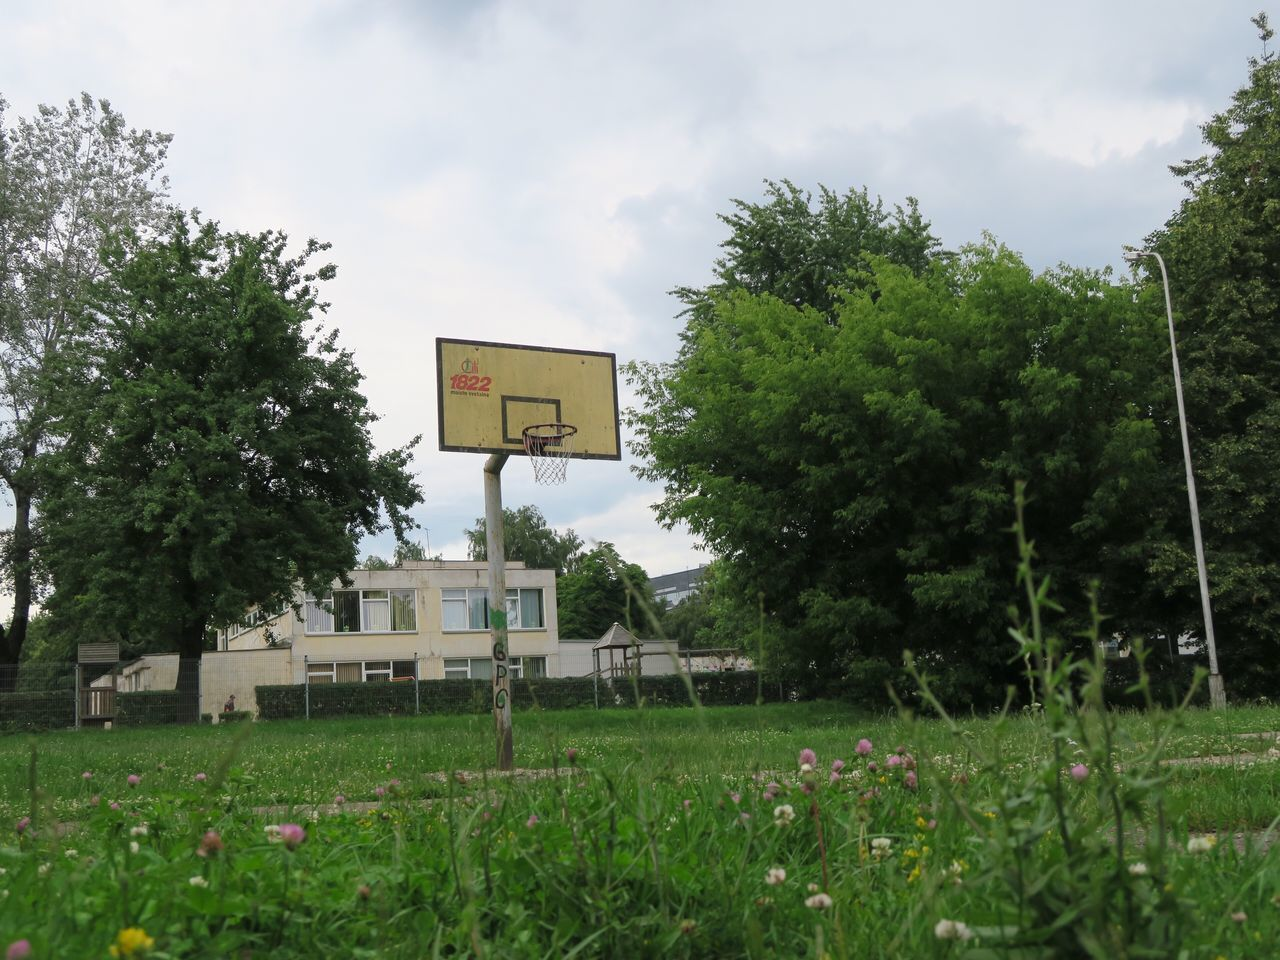 tree, green color, day, sky, growth, outdoors, grass, sport, no people, cloud - sky, basketball hoop, nature, basketball - sport, court